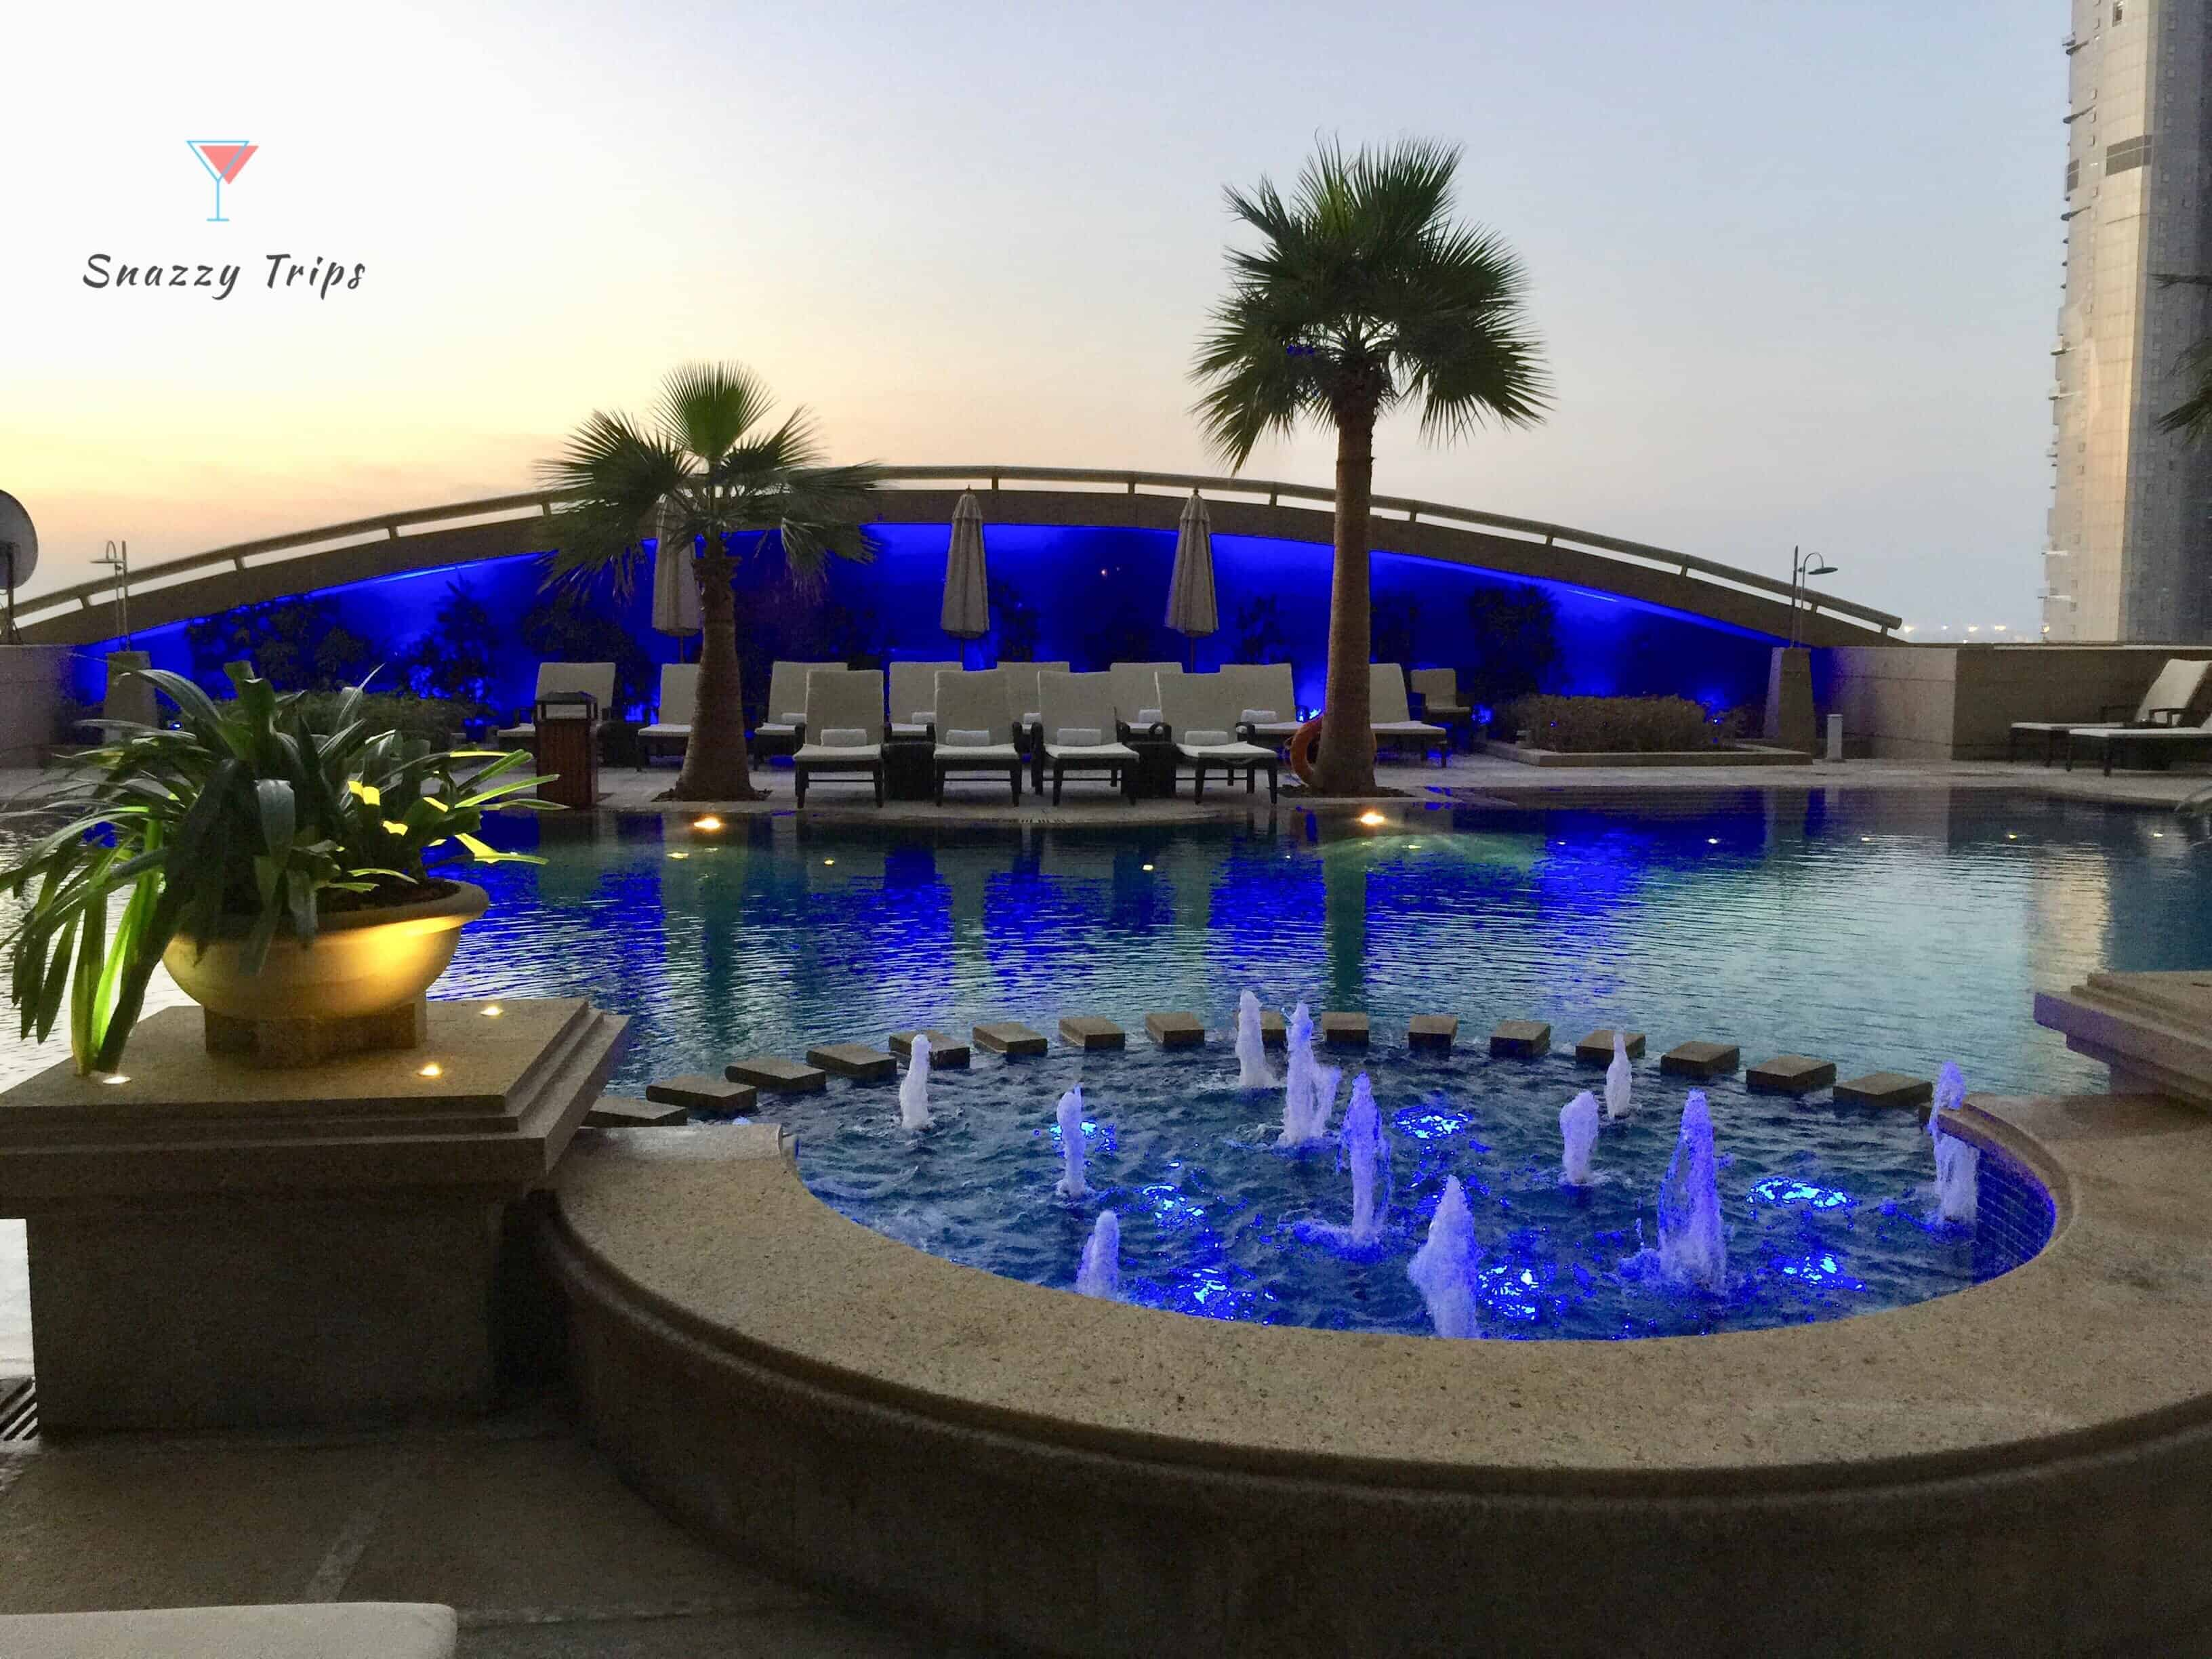 A Jewel in the desert. Must see Abu Dhabi.